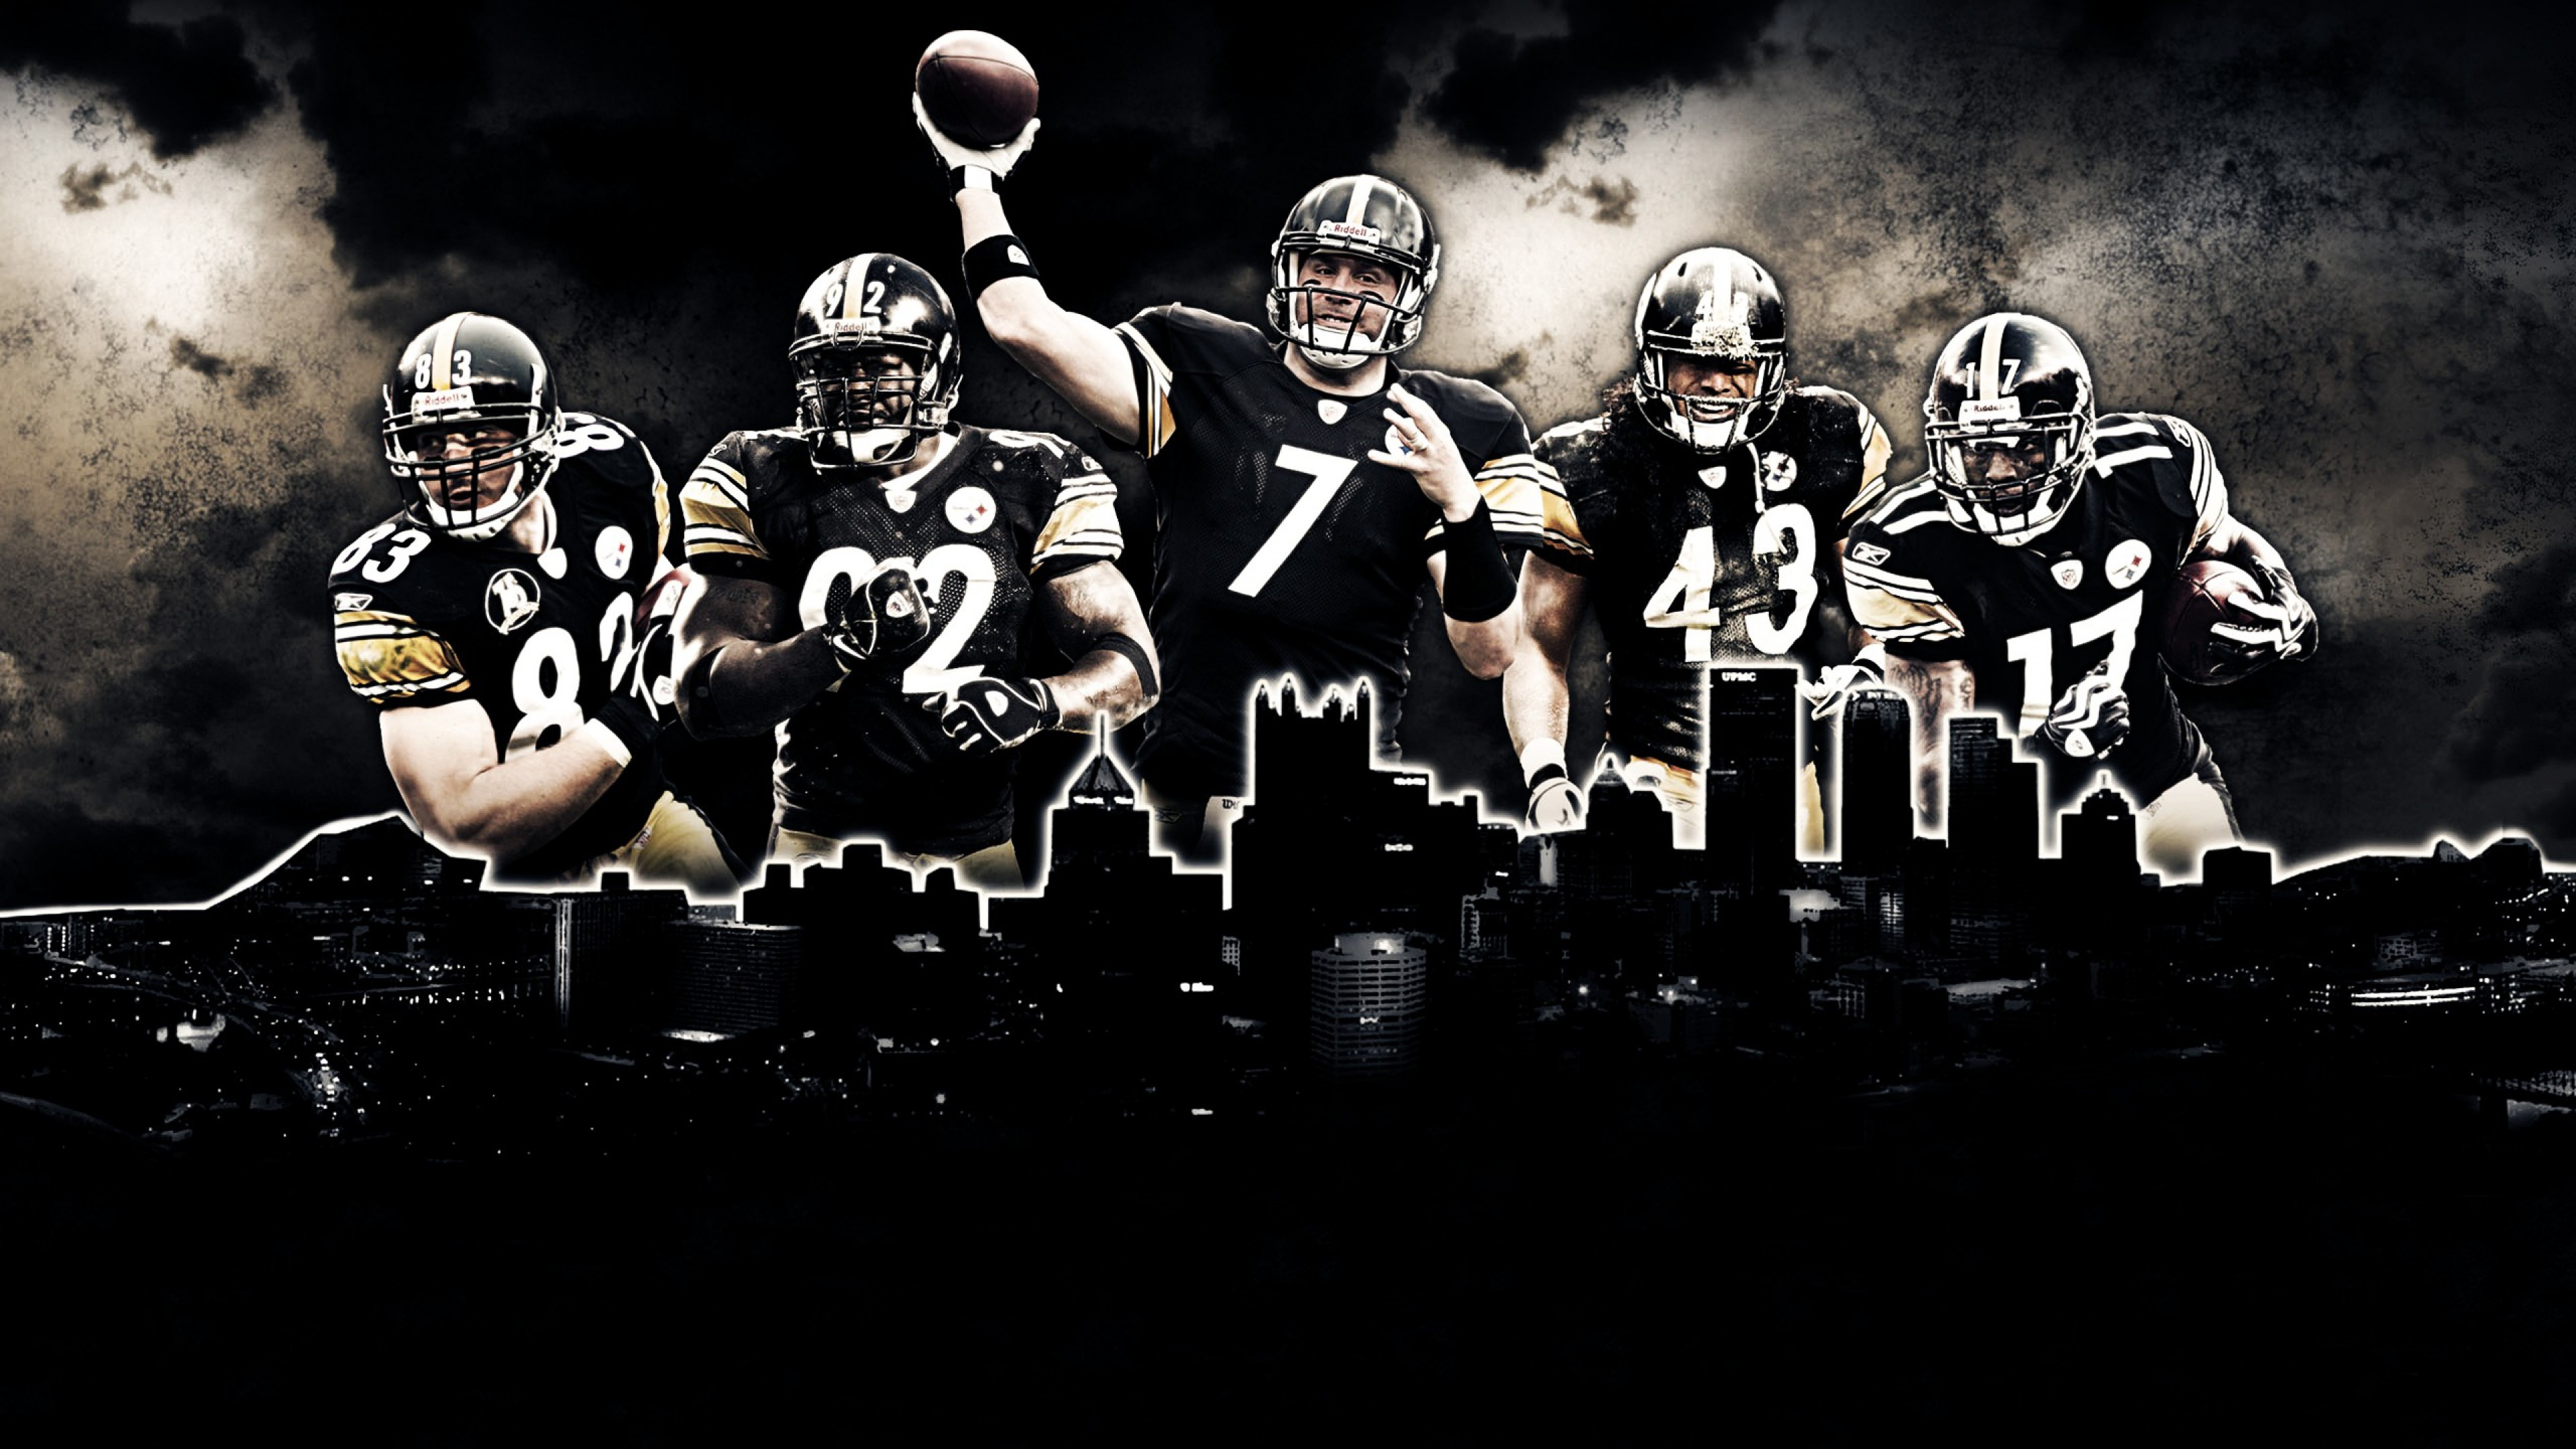 Nfl football wallpaper 63 images 3840x2160 nfl wallpapers hd team pittsburgh steelers voltagebd Image collections